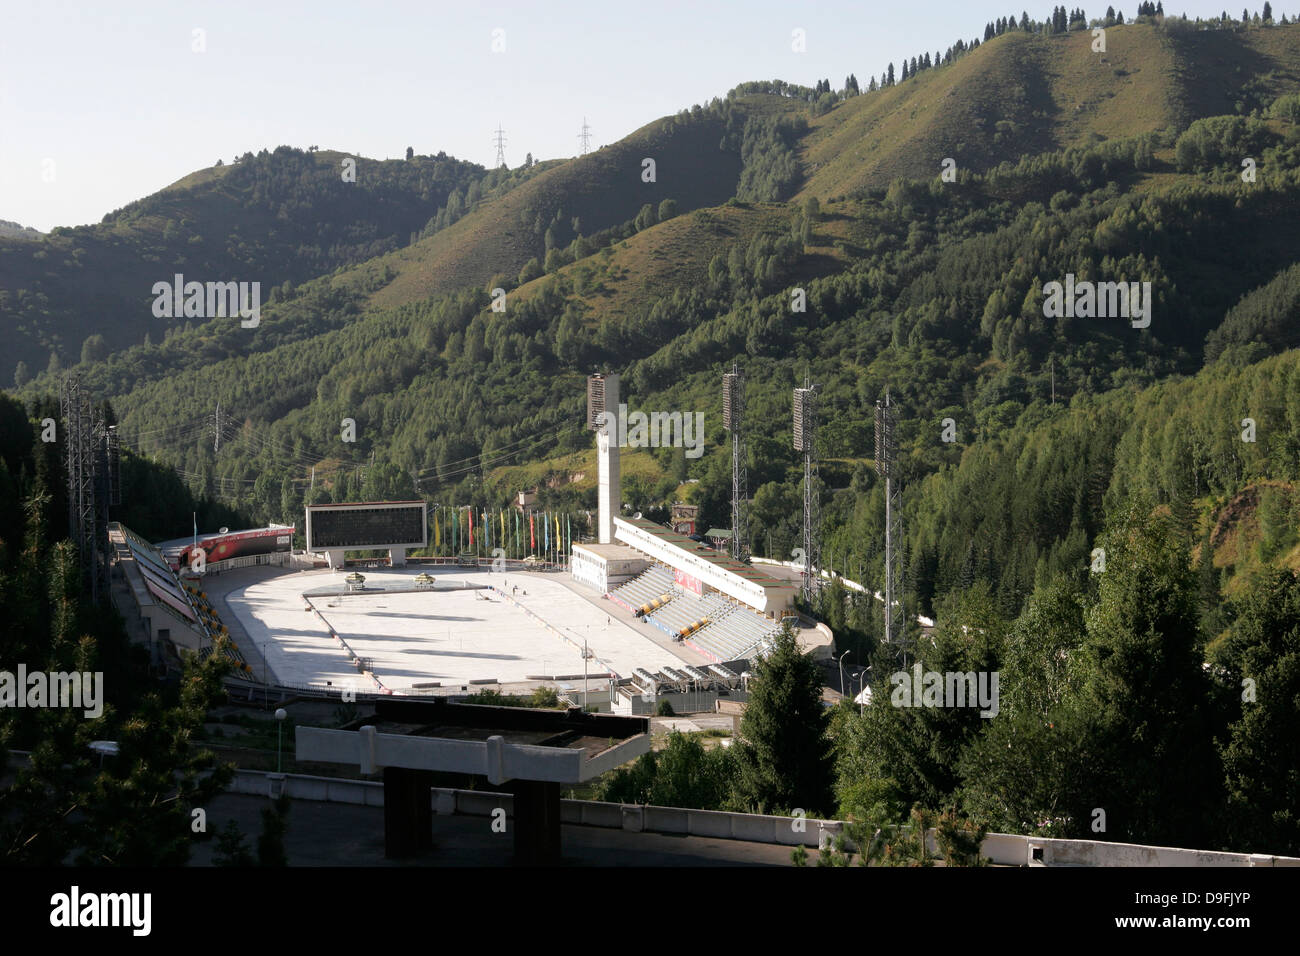 Medeu ice rink near Almaty (built in 1972, is made for speed skating and many champion skaters have trained here), Stock Photo